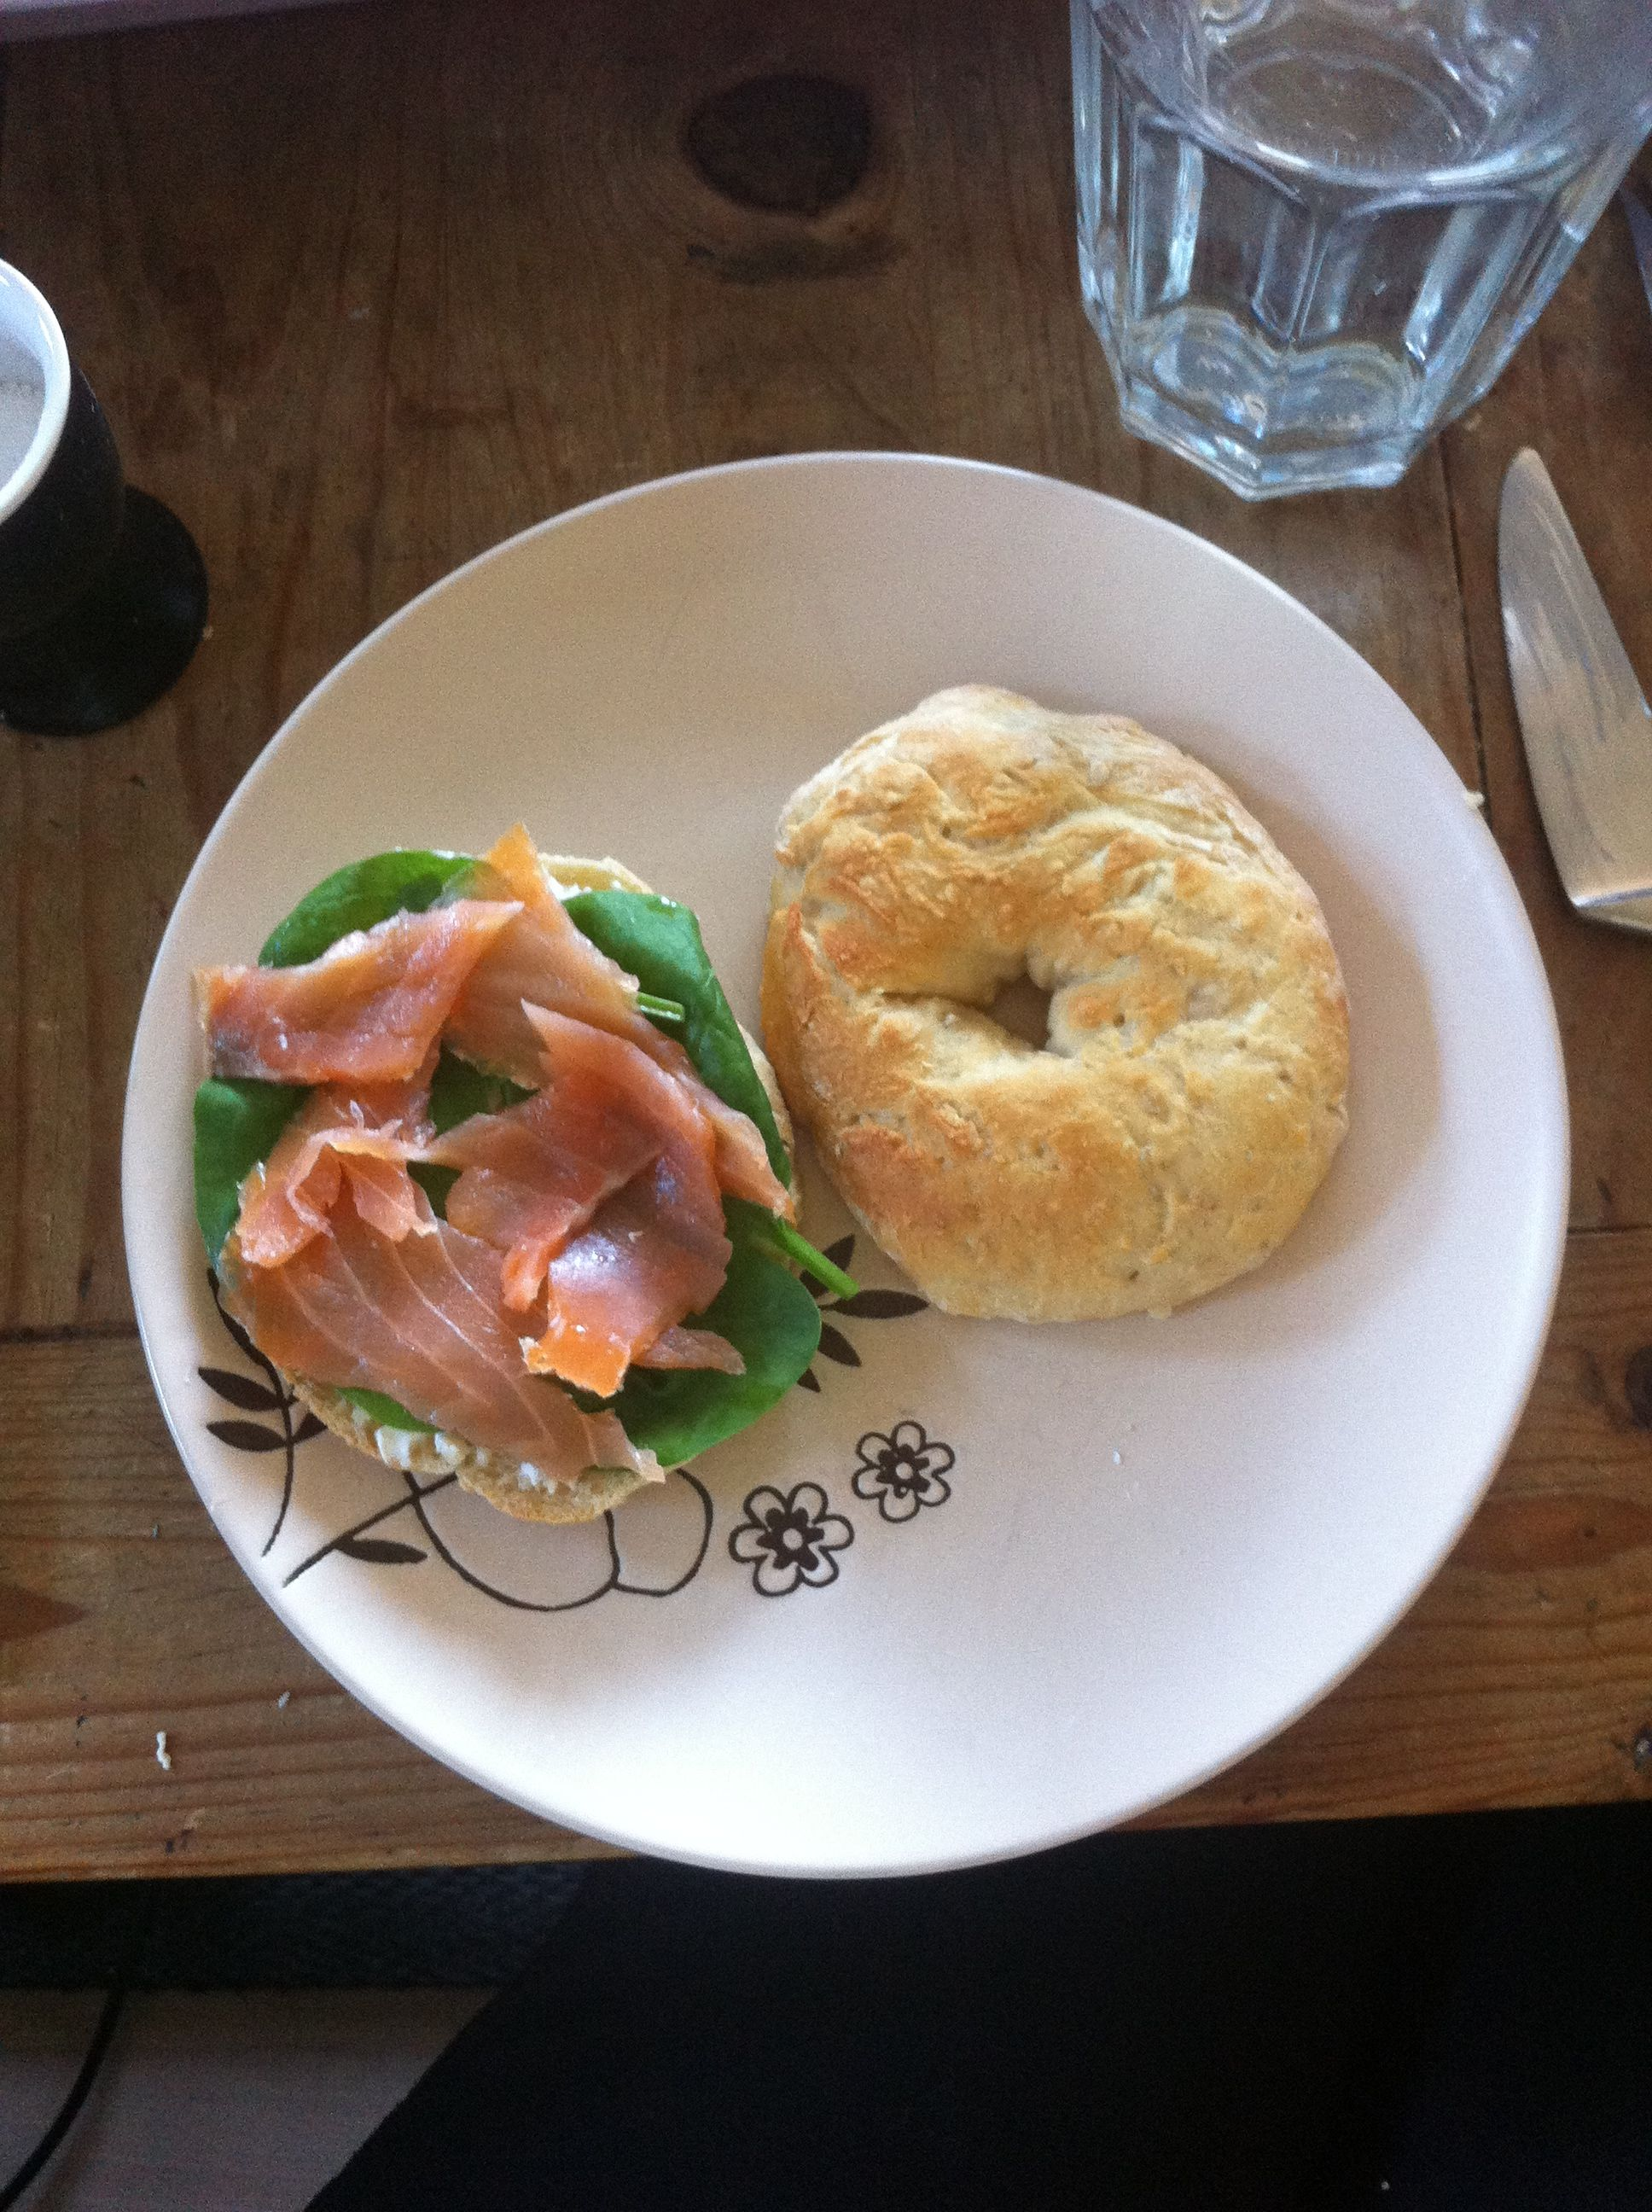 Homemade wholegrain bagel with lox and spinach.